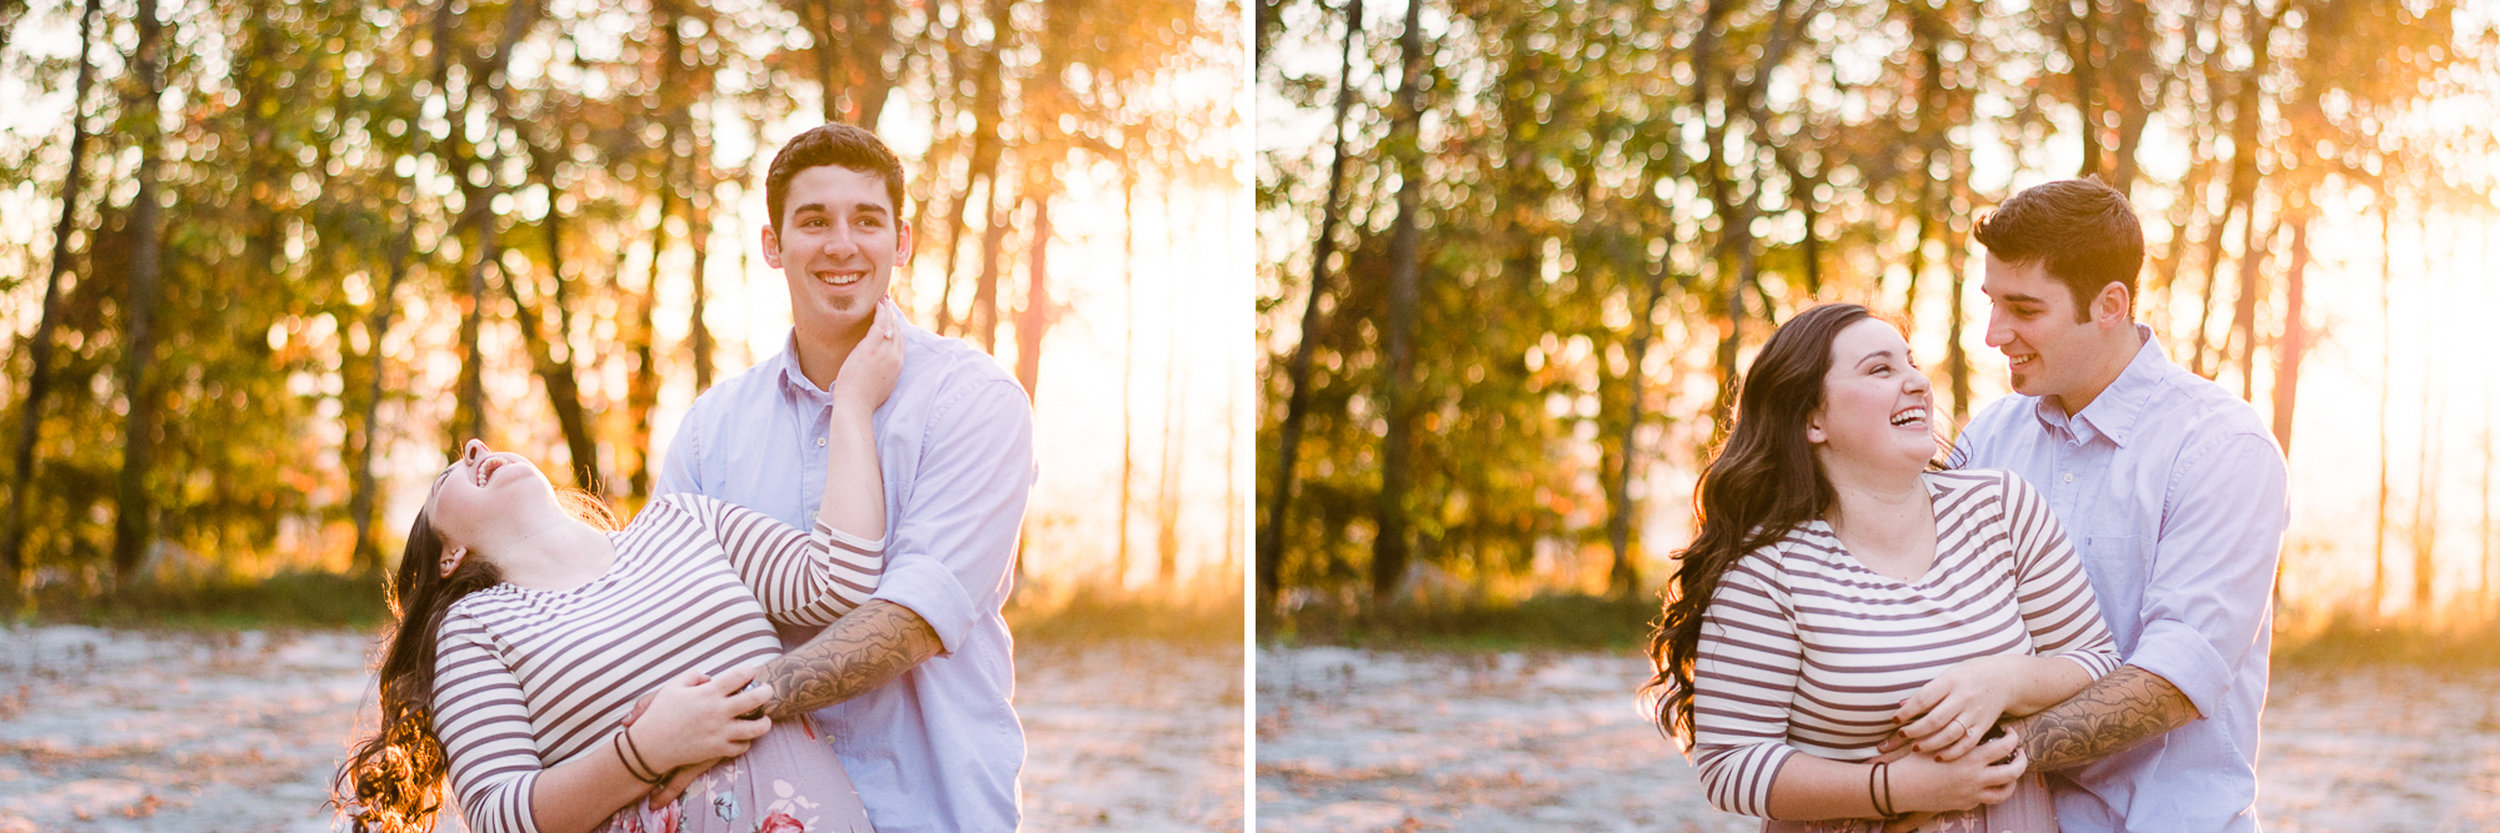 Mountain Engagement Portraits, Fall Engagement Photos, Engaged, 21.jpg